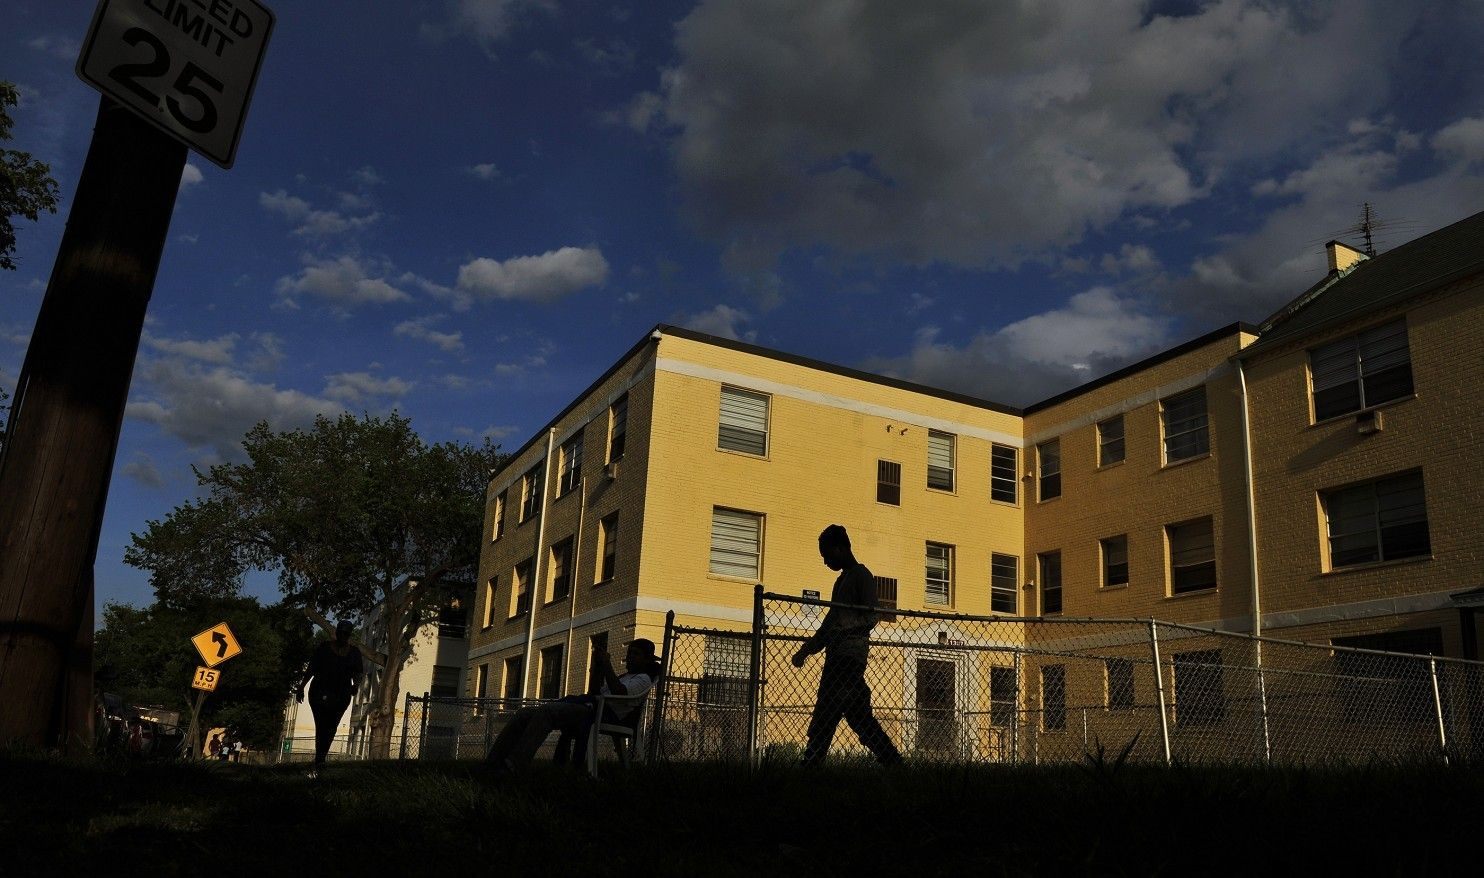 income tenants in D.C. may soon get legal help